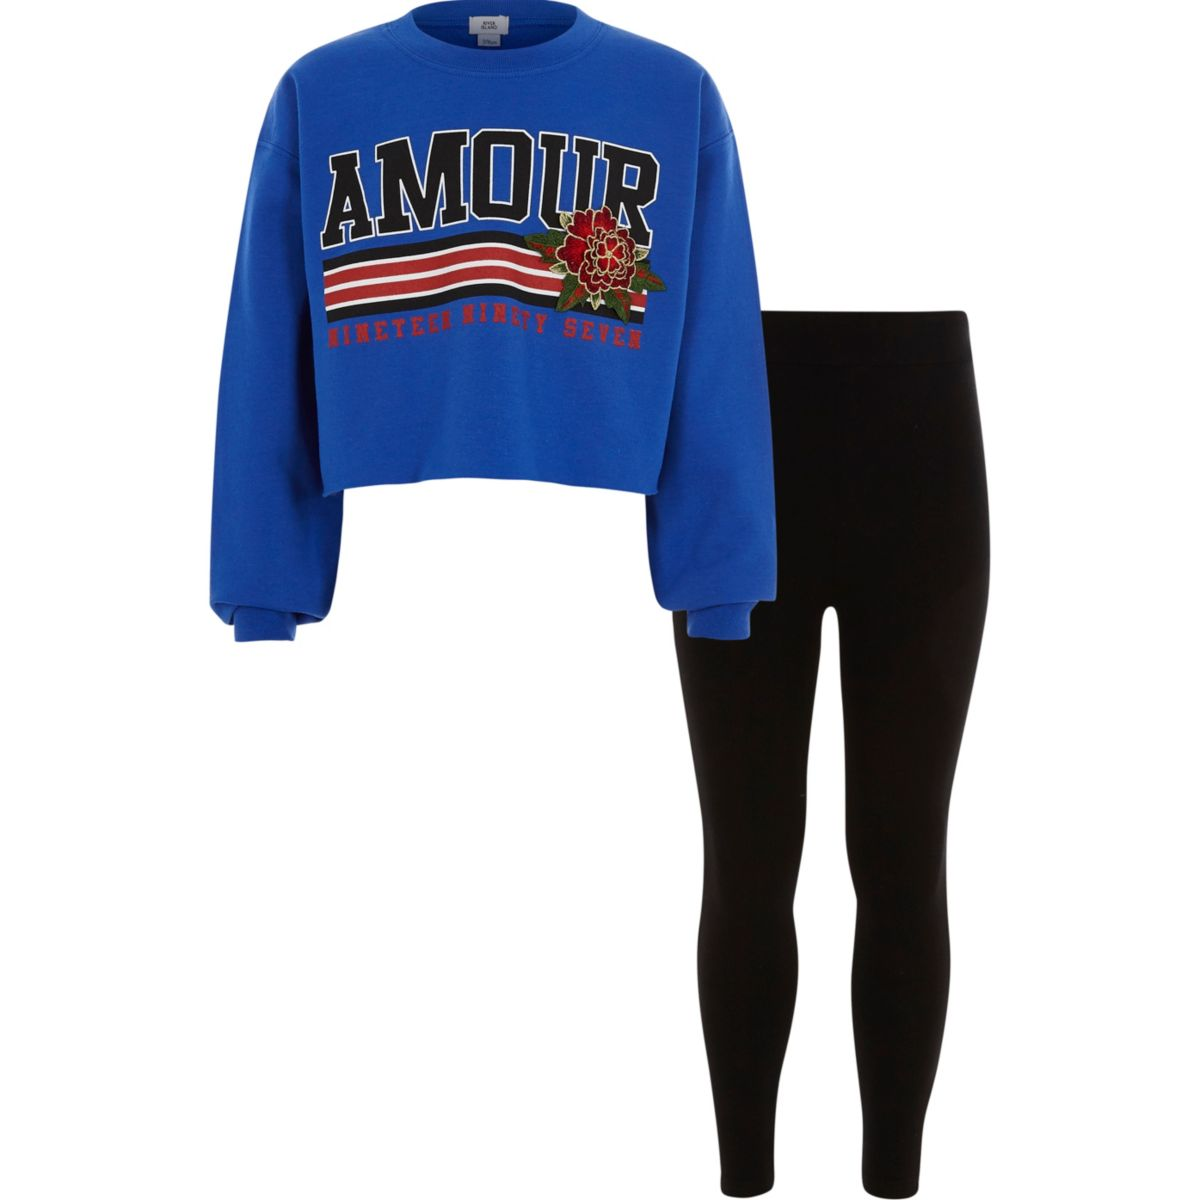 Girls blue 'Amour' cropped sweater outfit